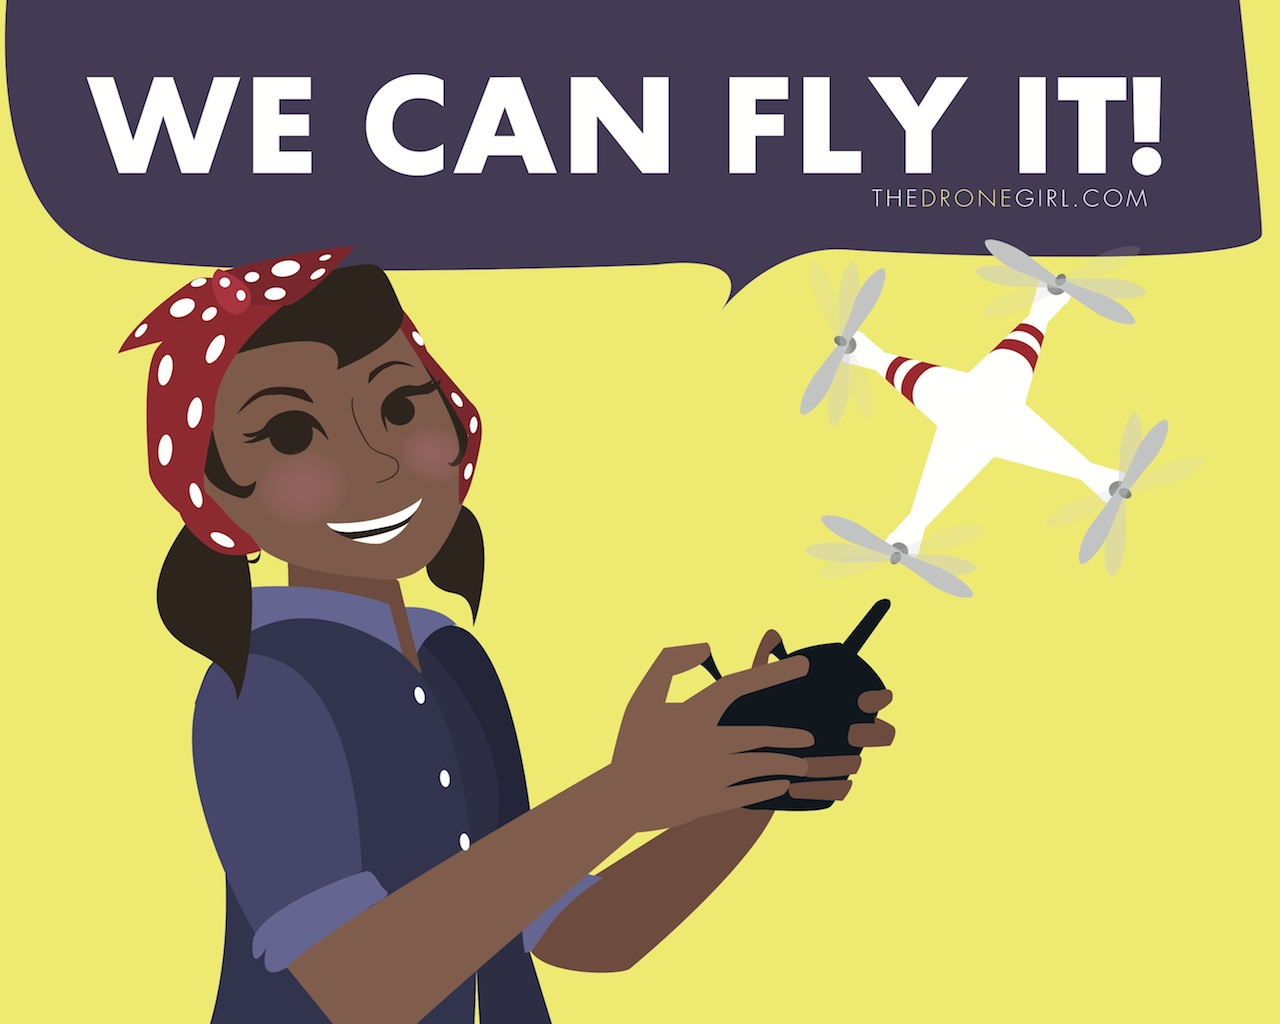 Drone Girl Art Series: We Can Fly It